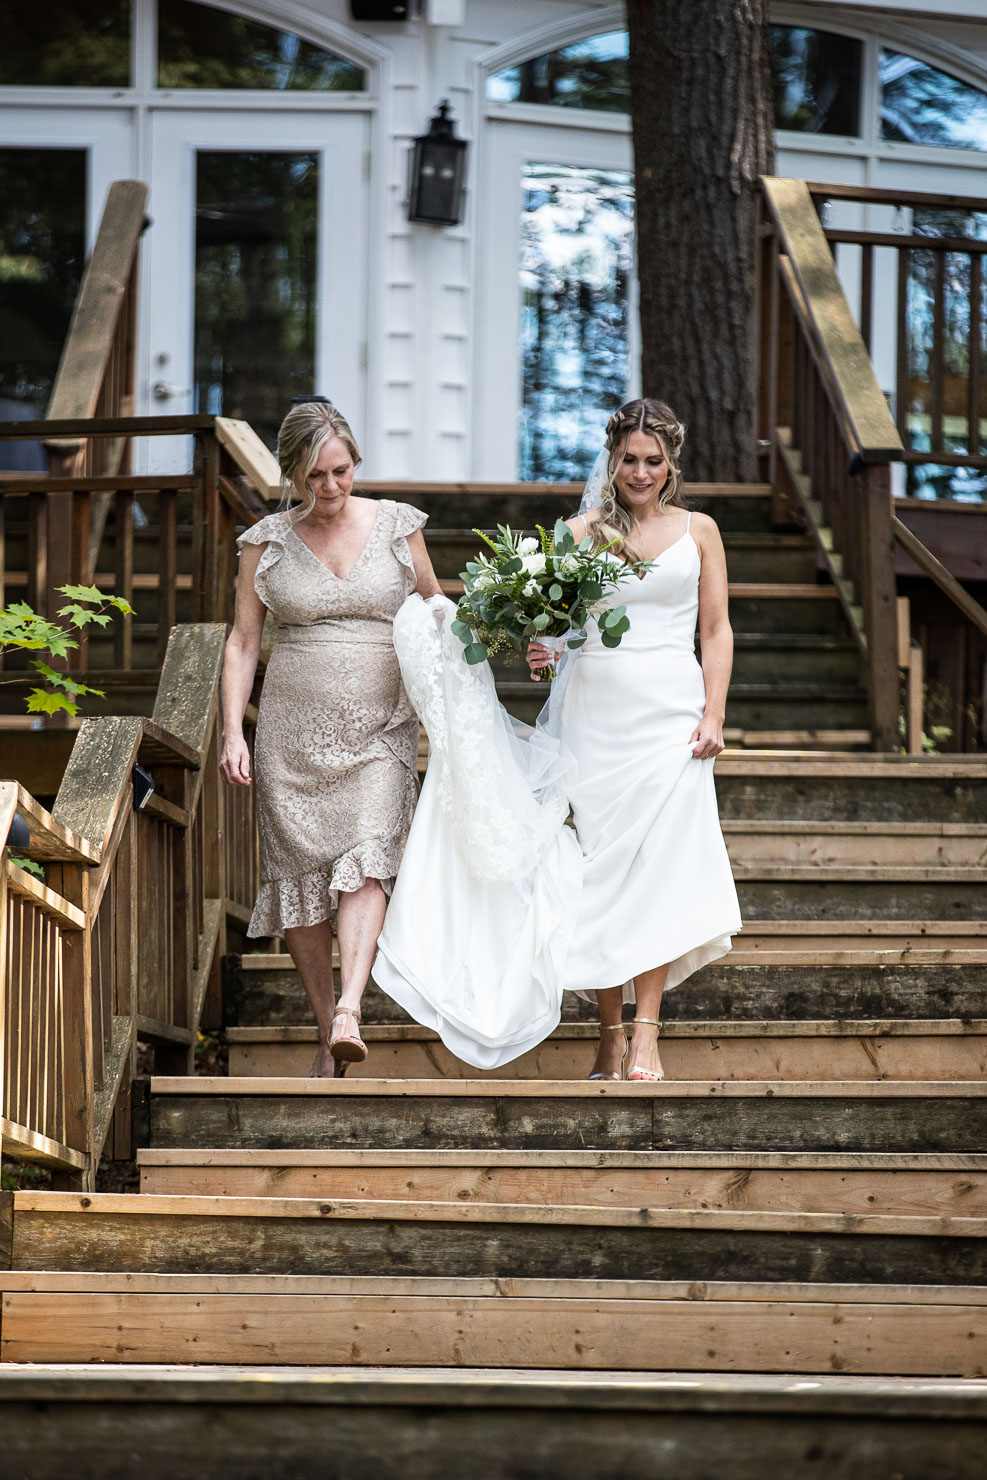 Bridesmaids, Ceremony, Wedding, Wedding Photo, akaiserphoto, Sherwood Inn, wedding photographer, sudbury photographer, muskoka wedding, details